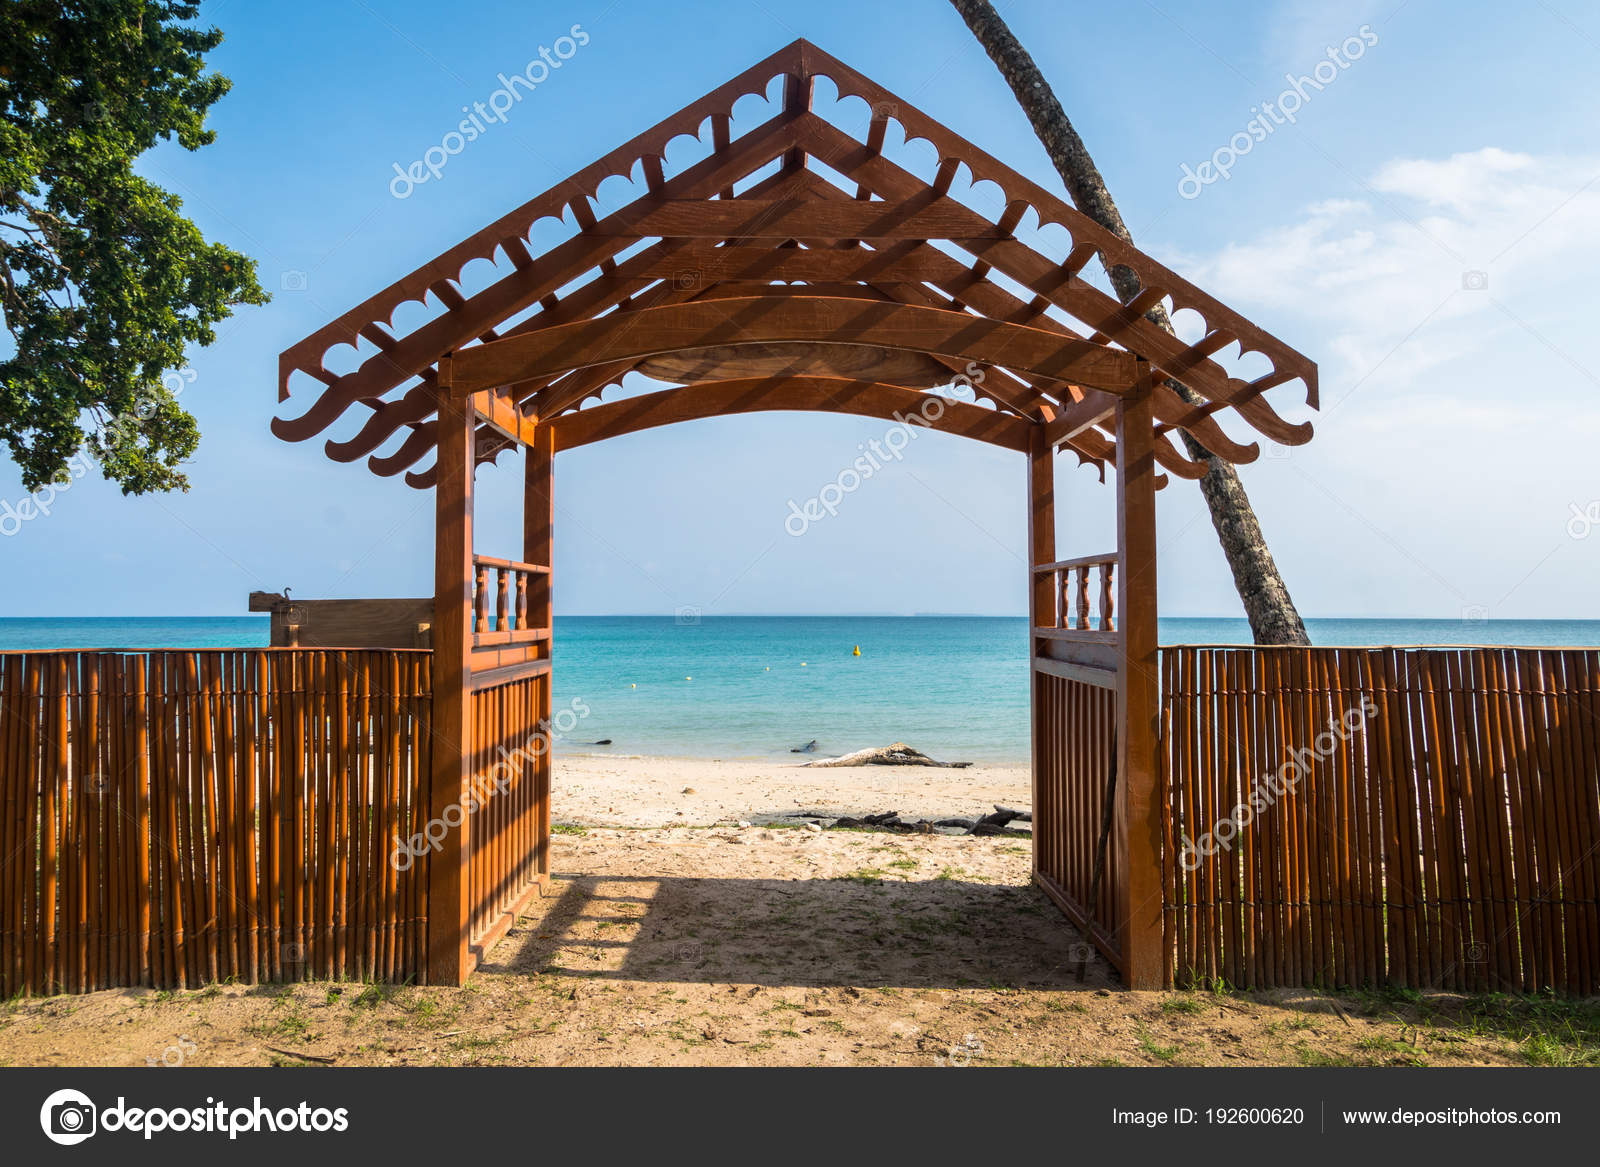 Open Gate To The Sea Without People A Symbol Of Infinity Stock